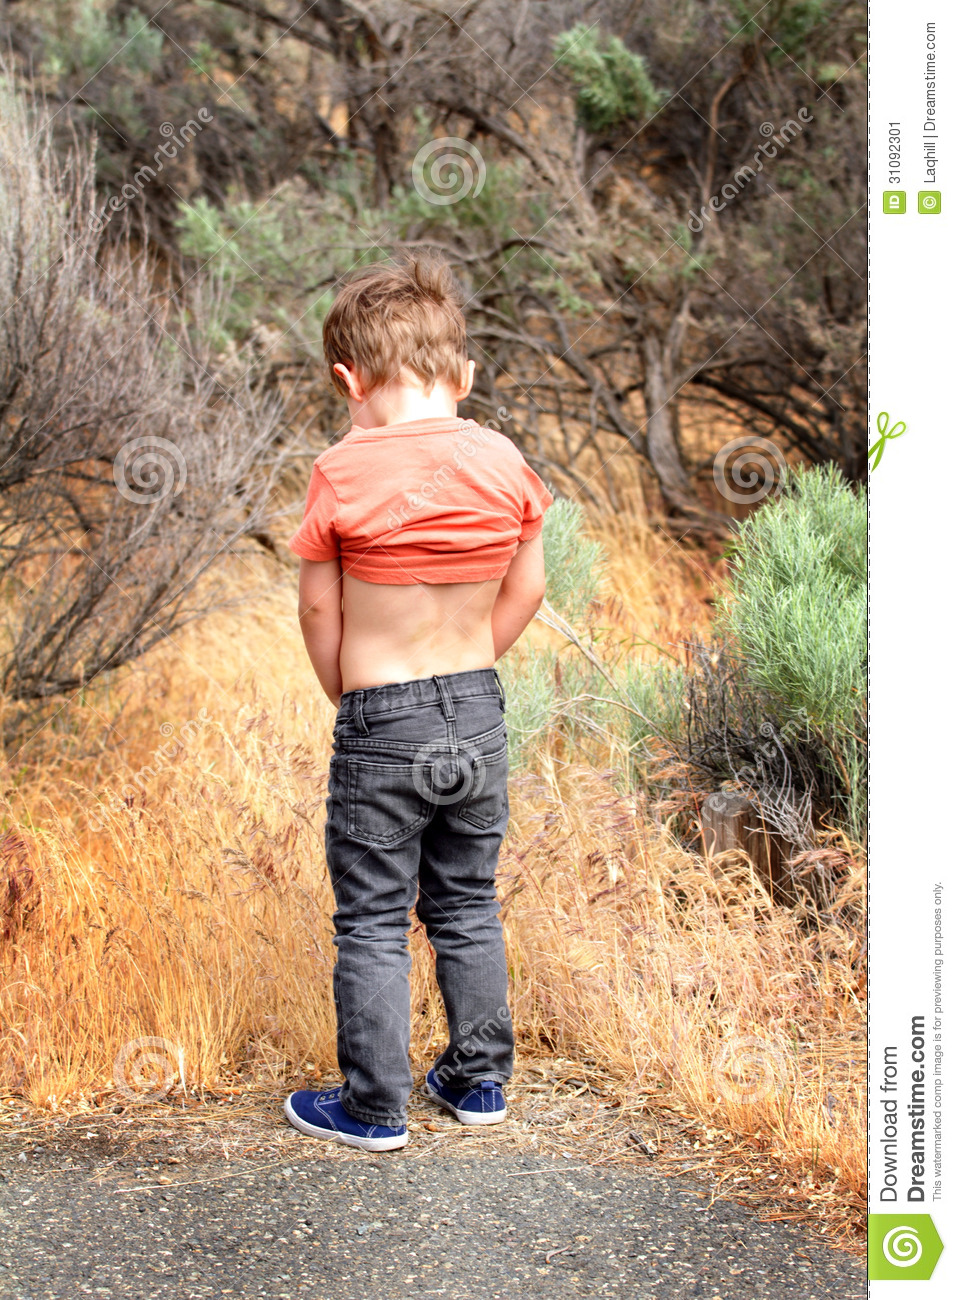 small boy pissing photo